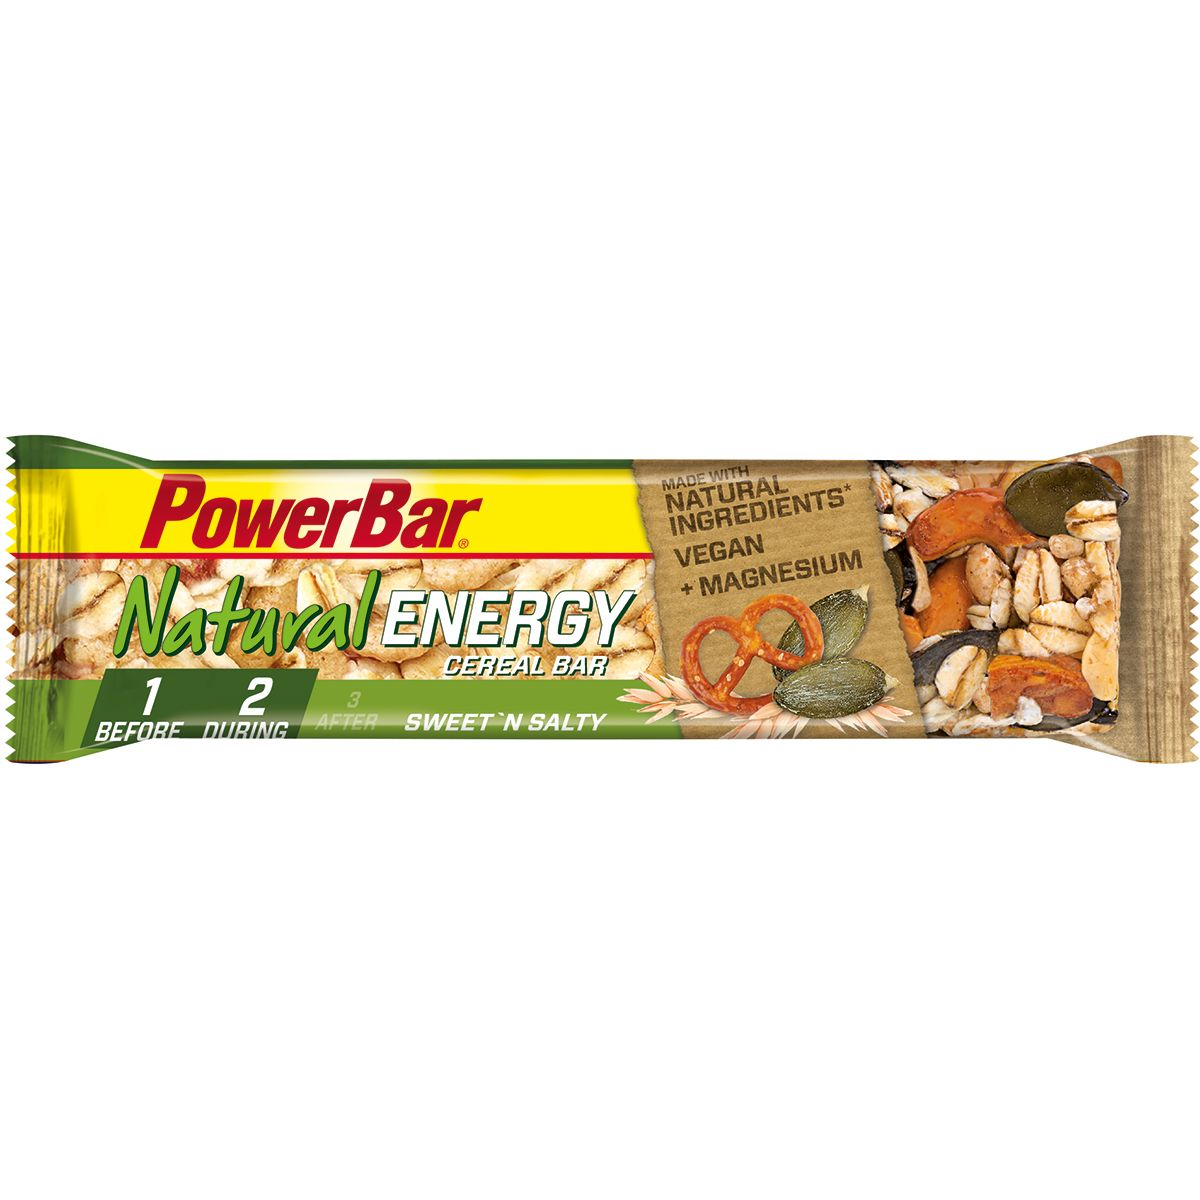 Image of PowerBar Natural Energy Cereal Riegel